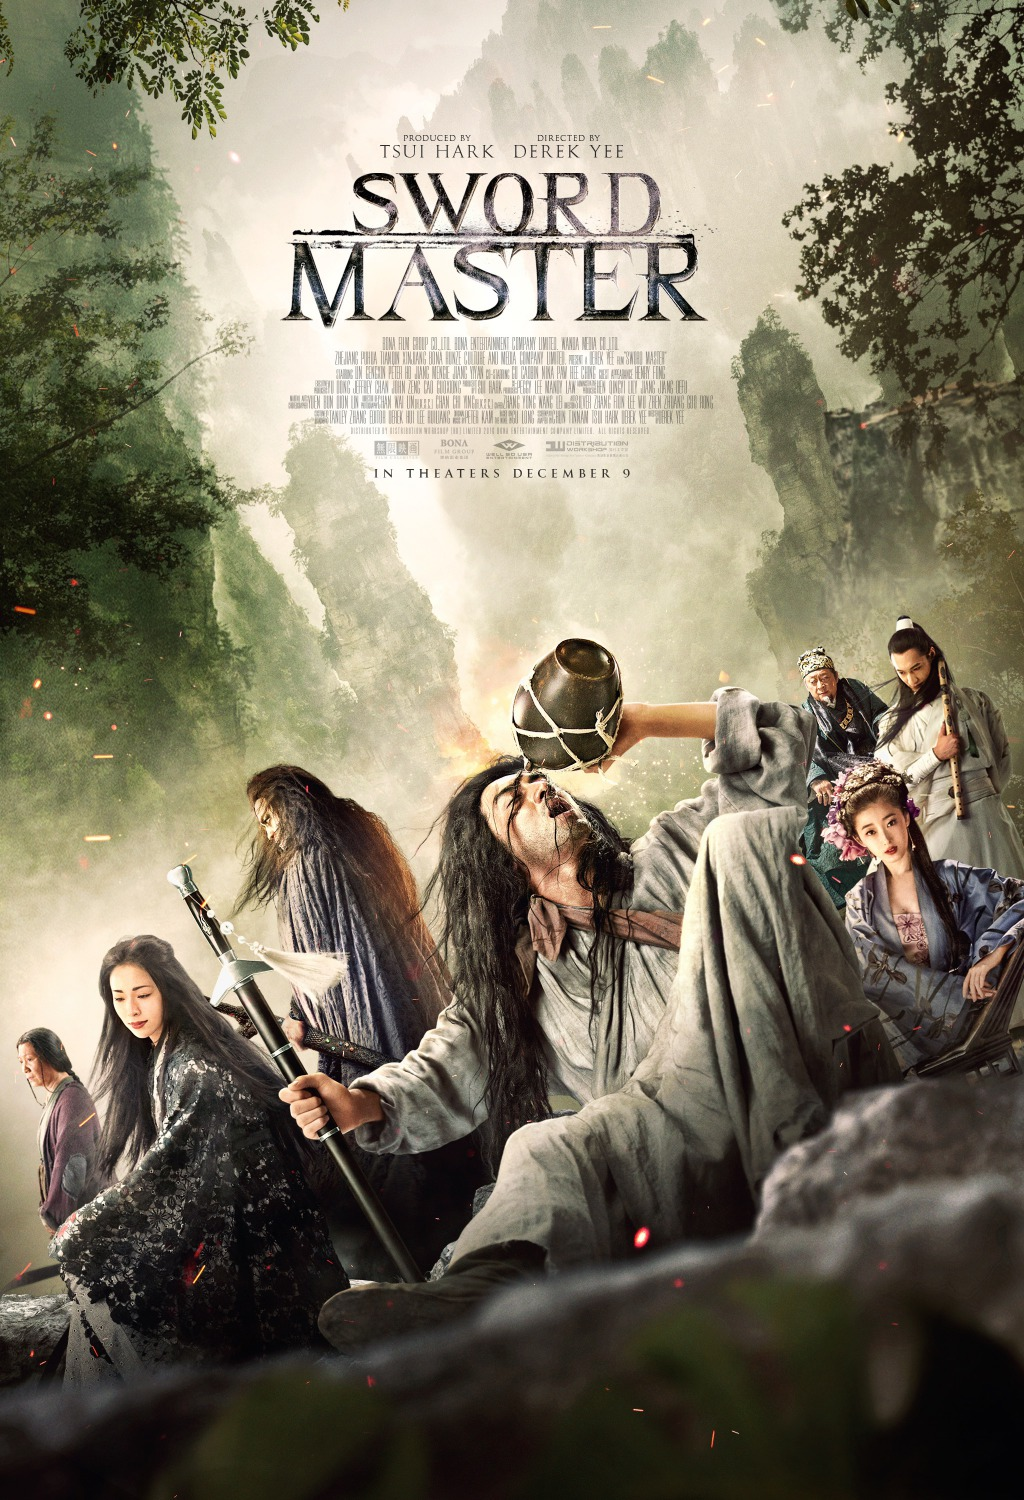 Master 2016 Sword Master Aka San Shao Ye De Jian Movie Poster 4 Of 11